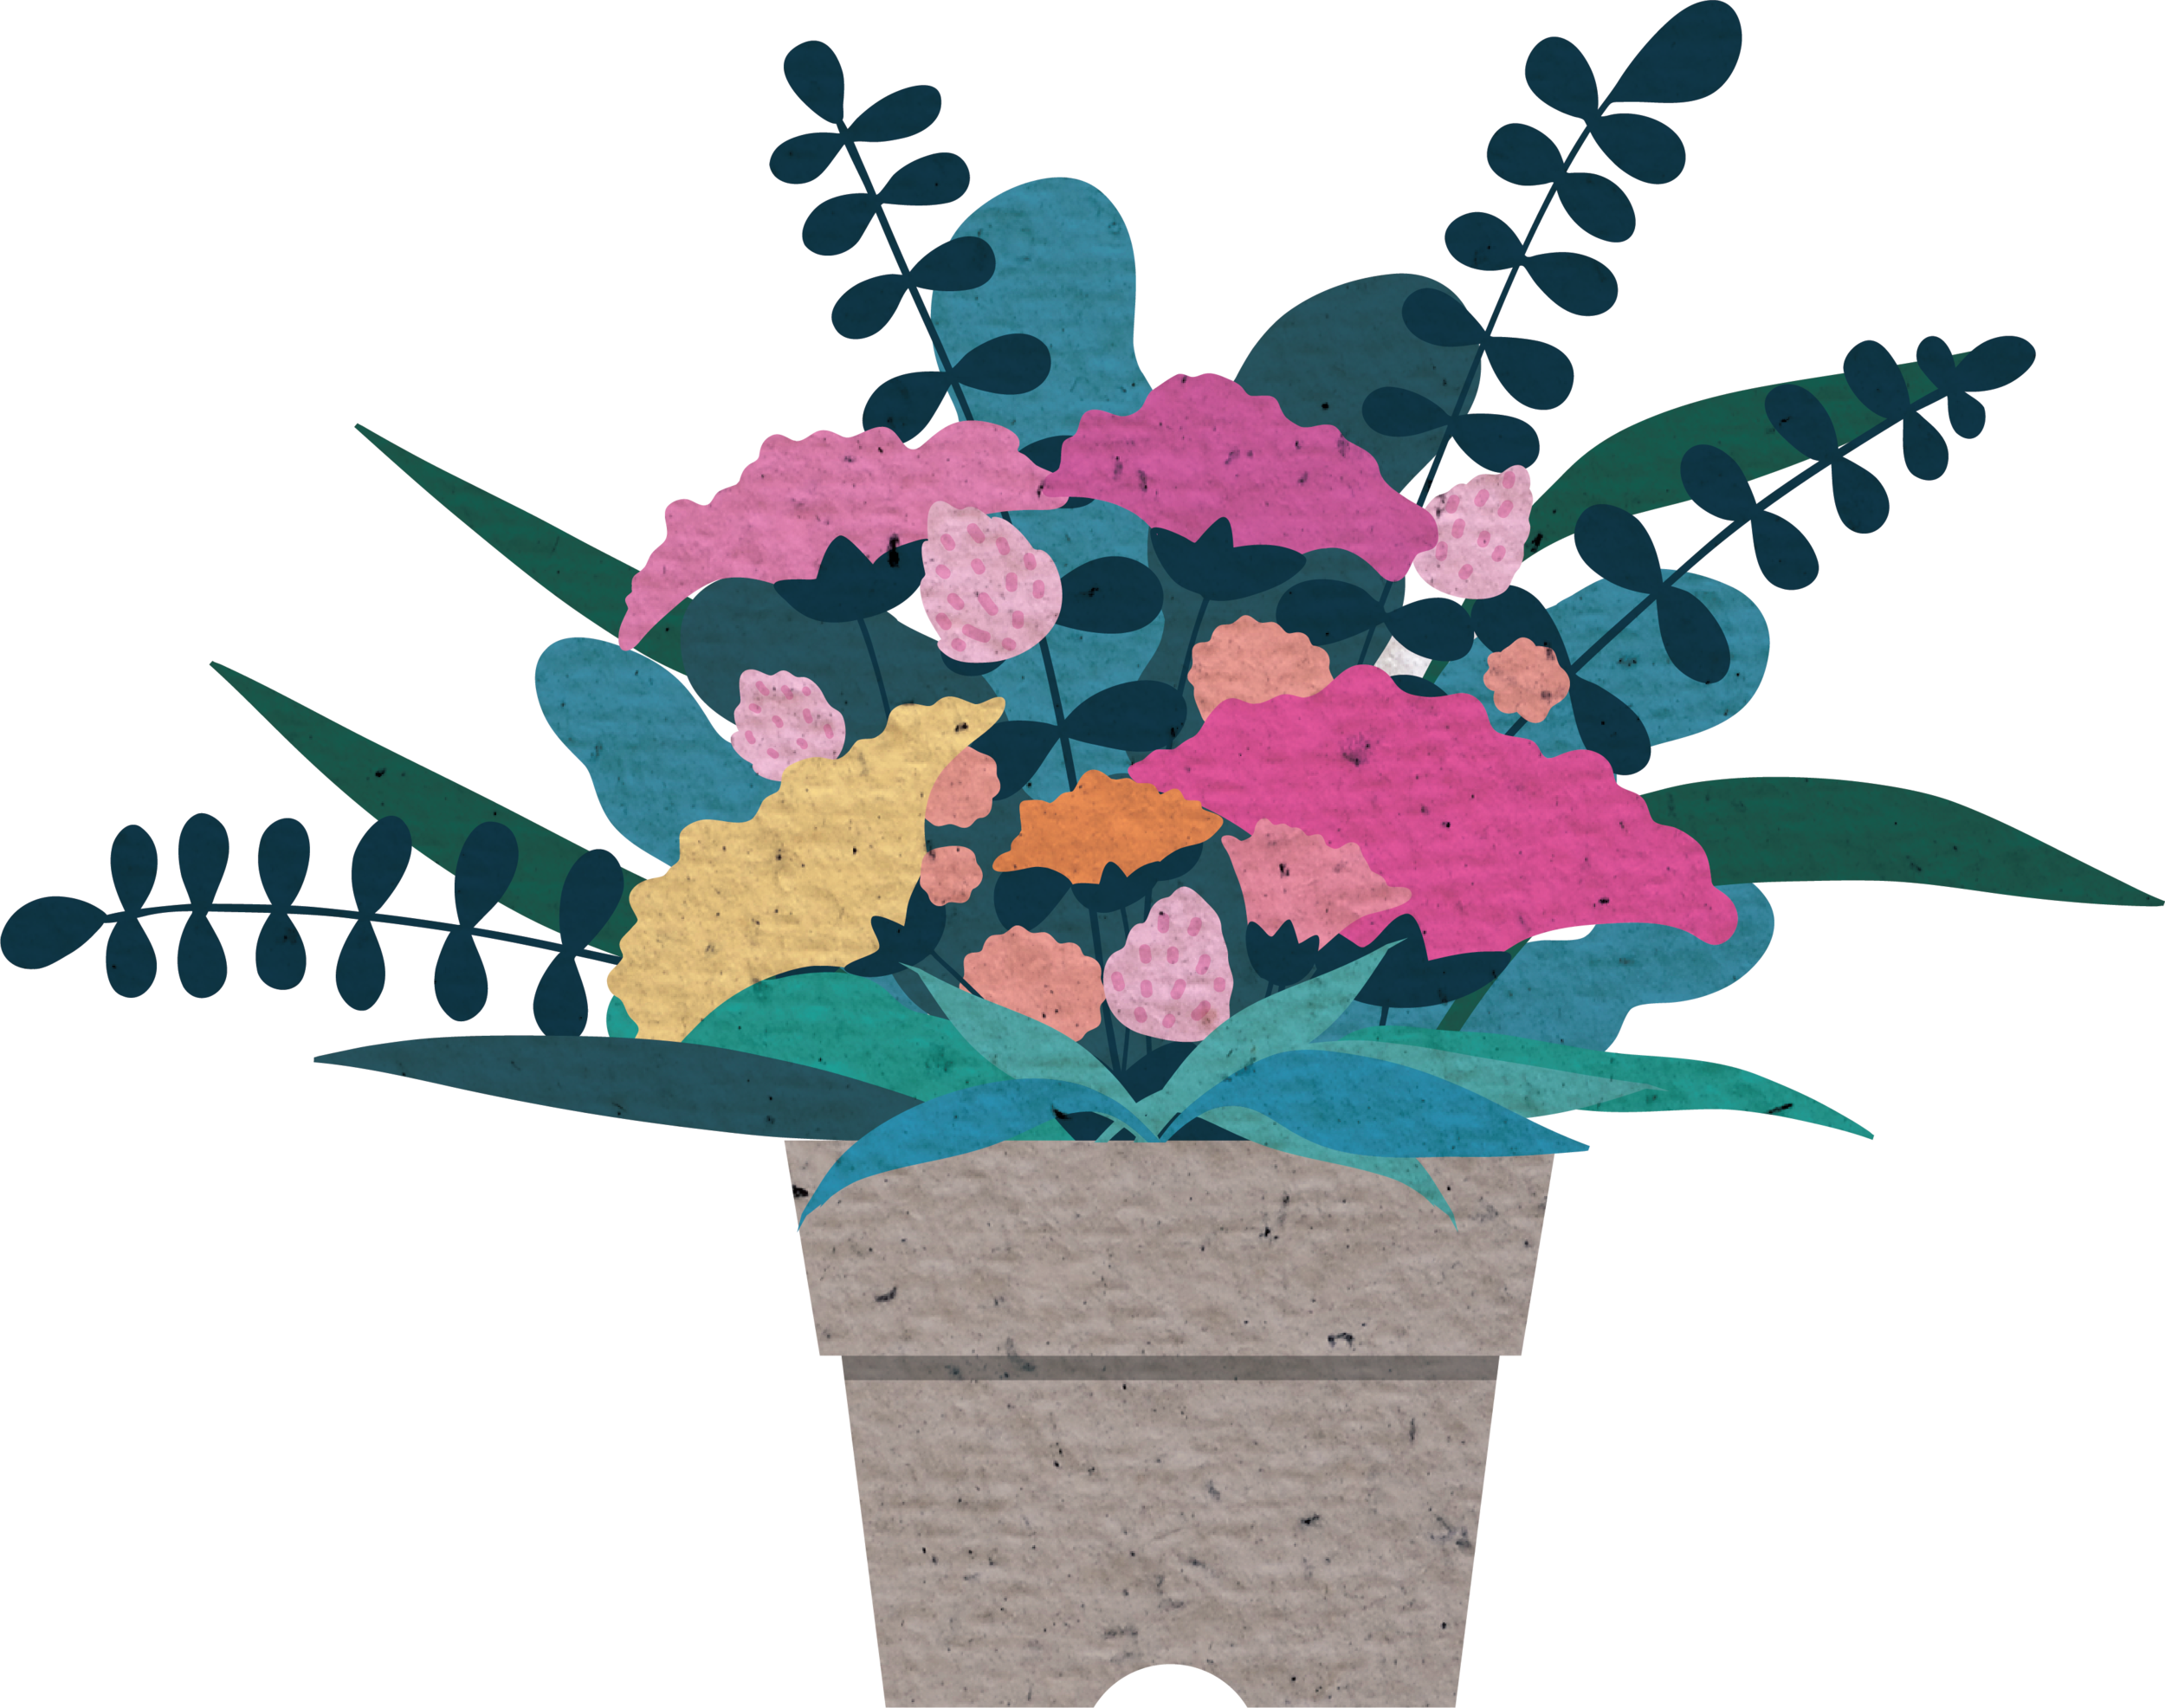 flower-illustration-1975861.png